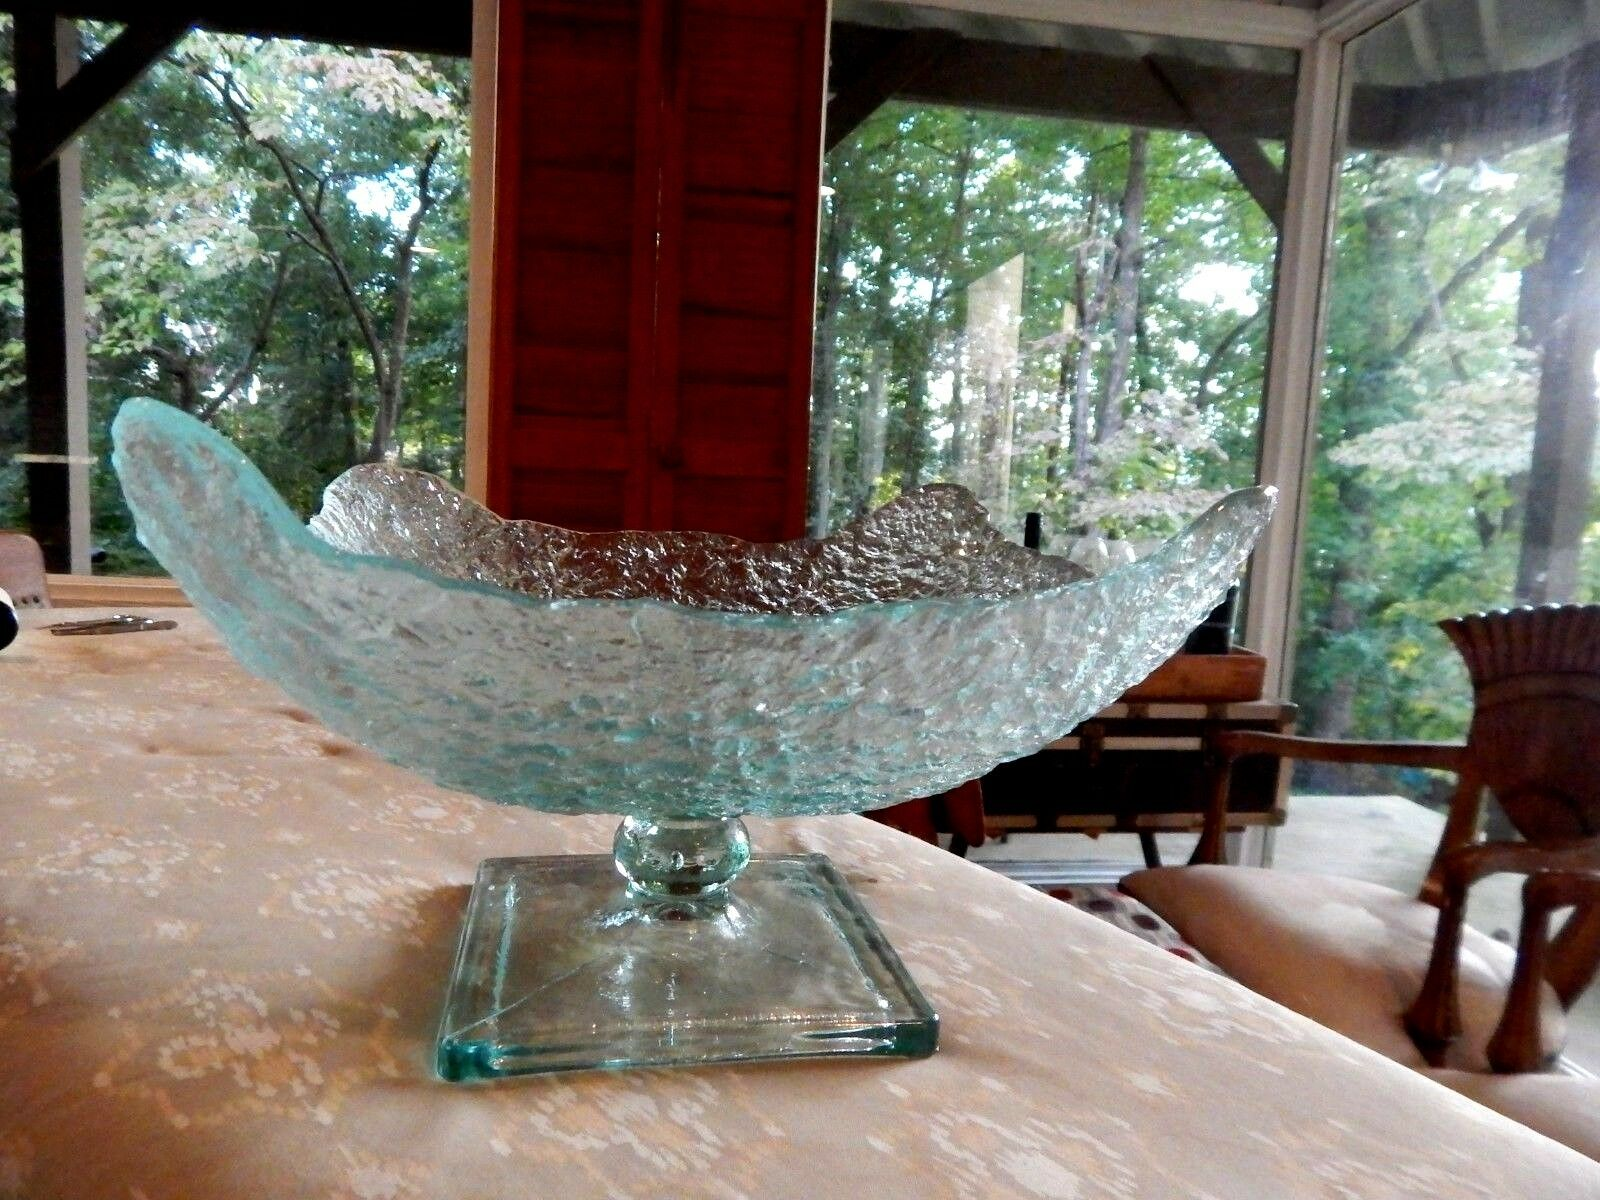 Unique Clear Pebbled Pedestal Glass Bowl Large & BEAUTIFUL GREAT HOLIDAY